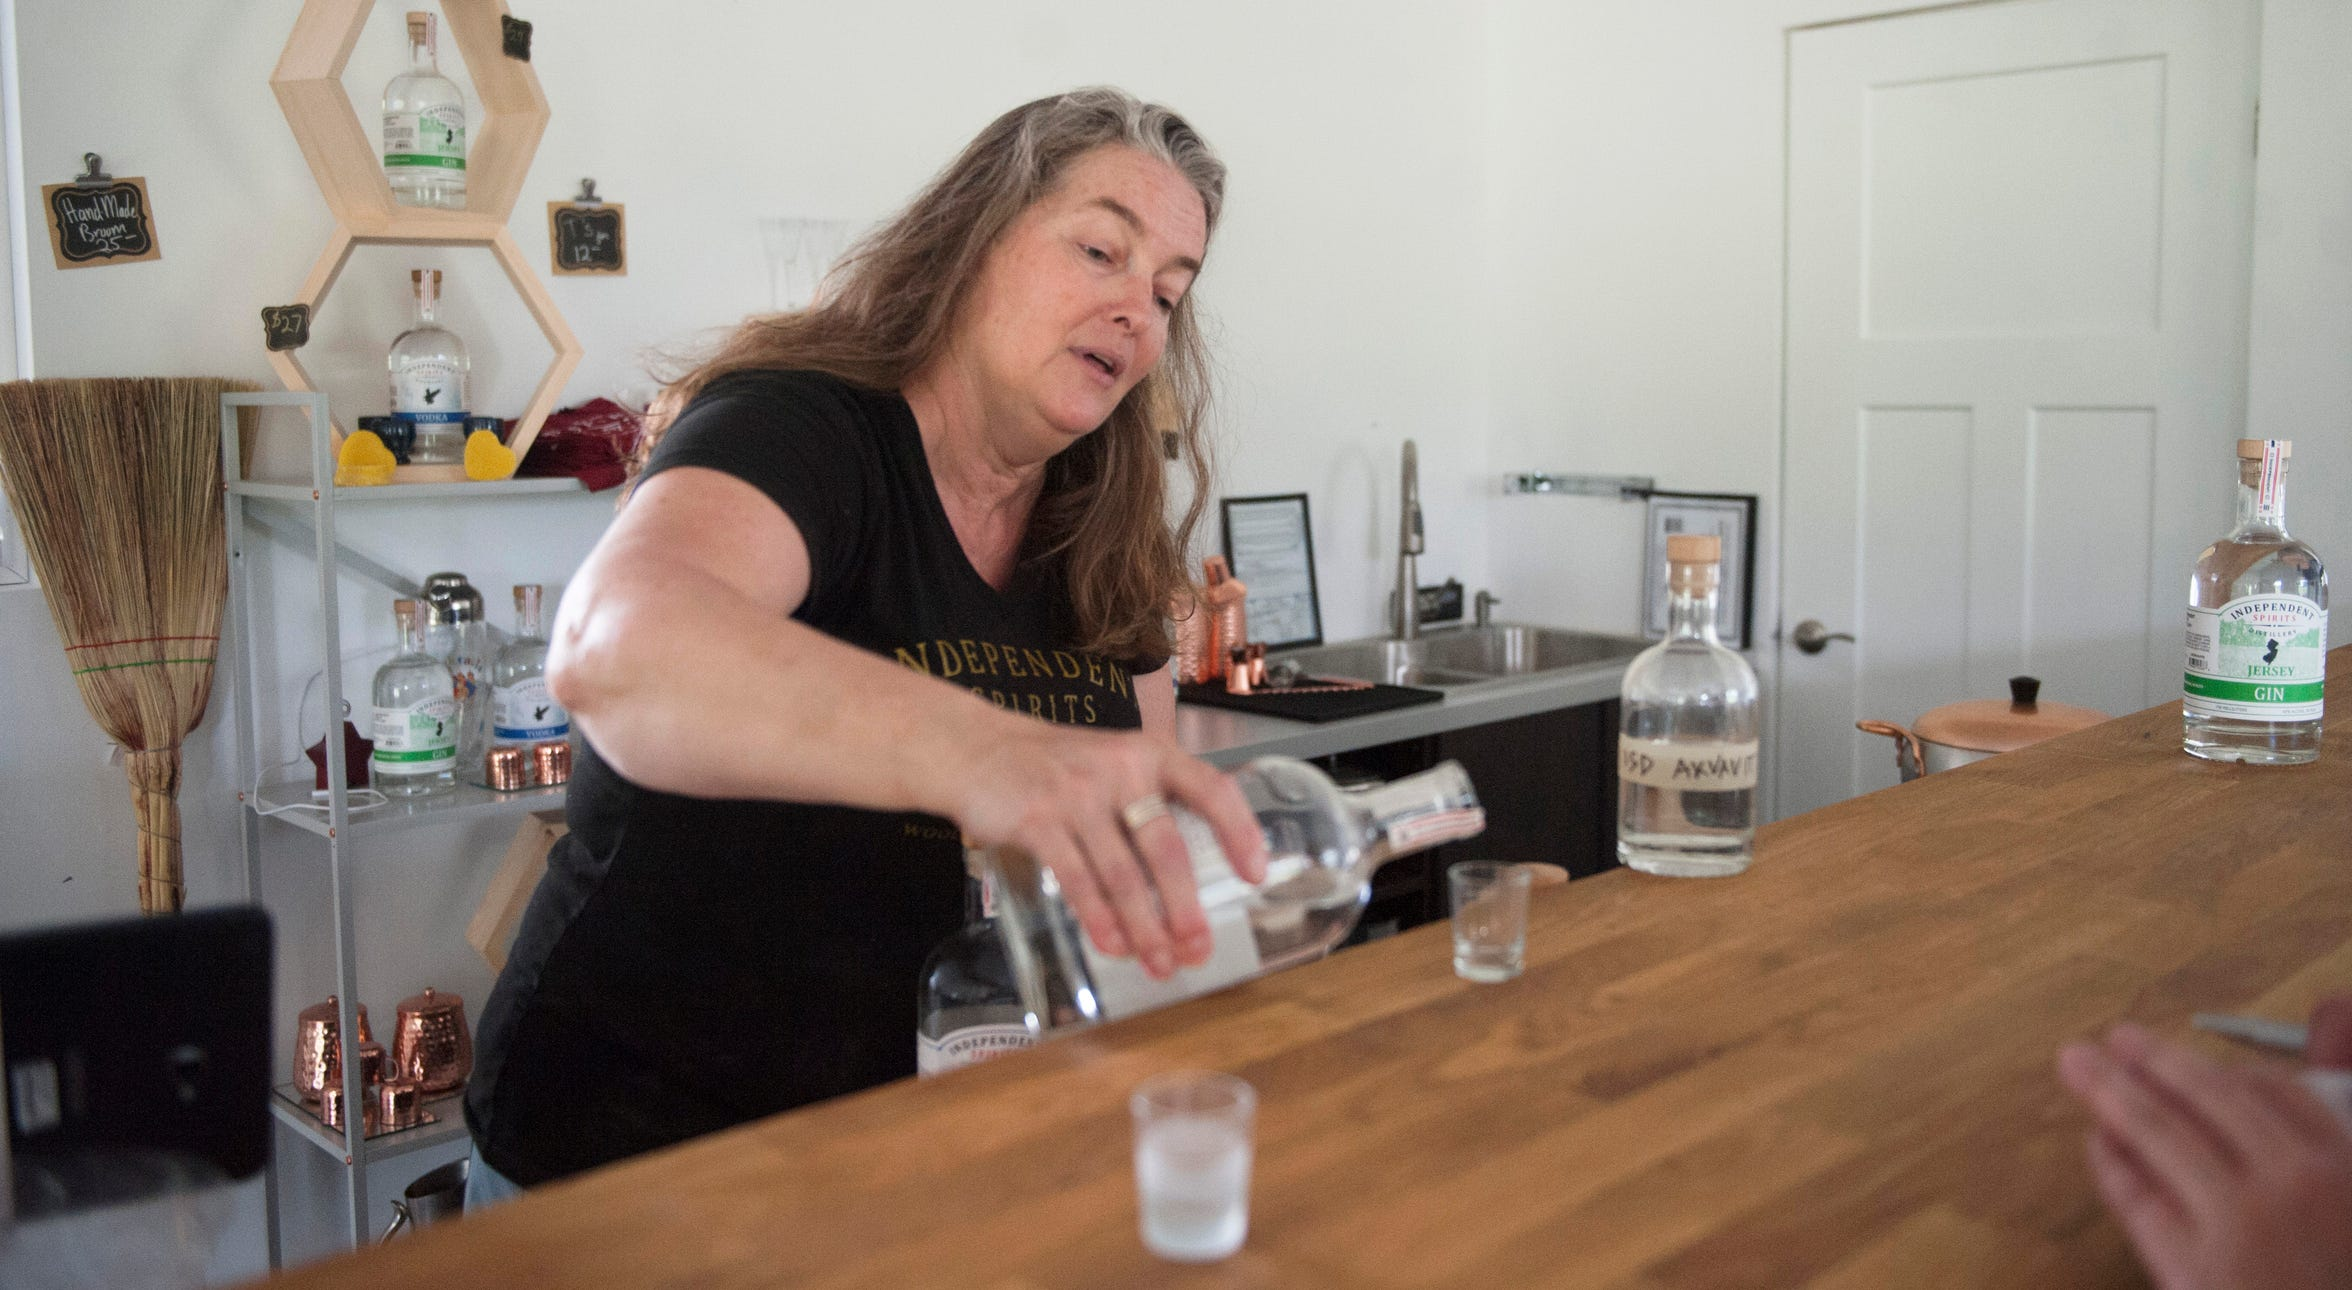 Kerry Thomsen, owner of Independent Spirits Distillery, pours a sample of gin in the tasting room of her Woolwich Township distillery.